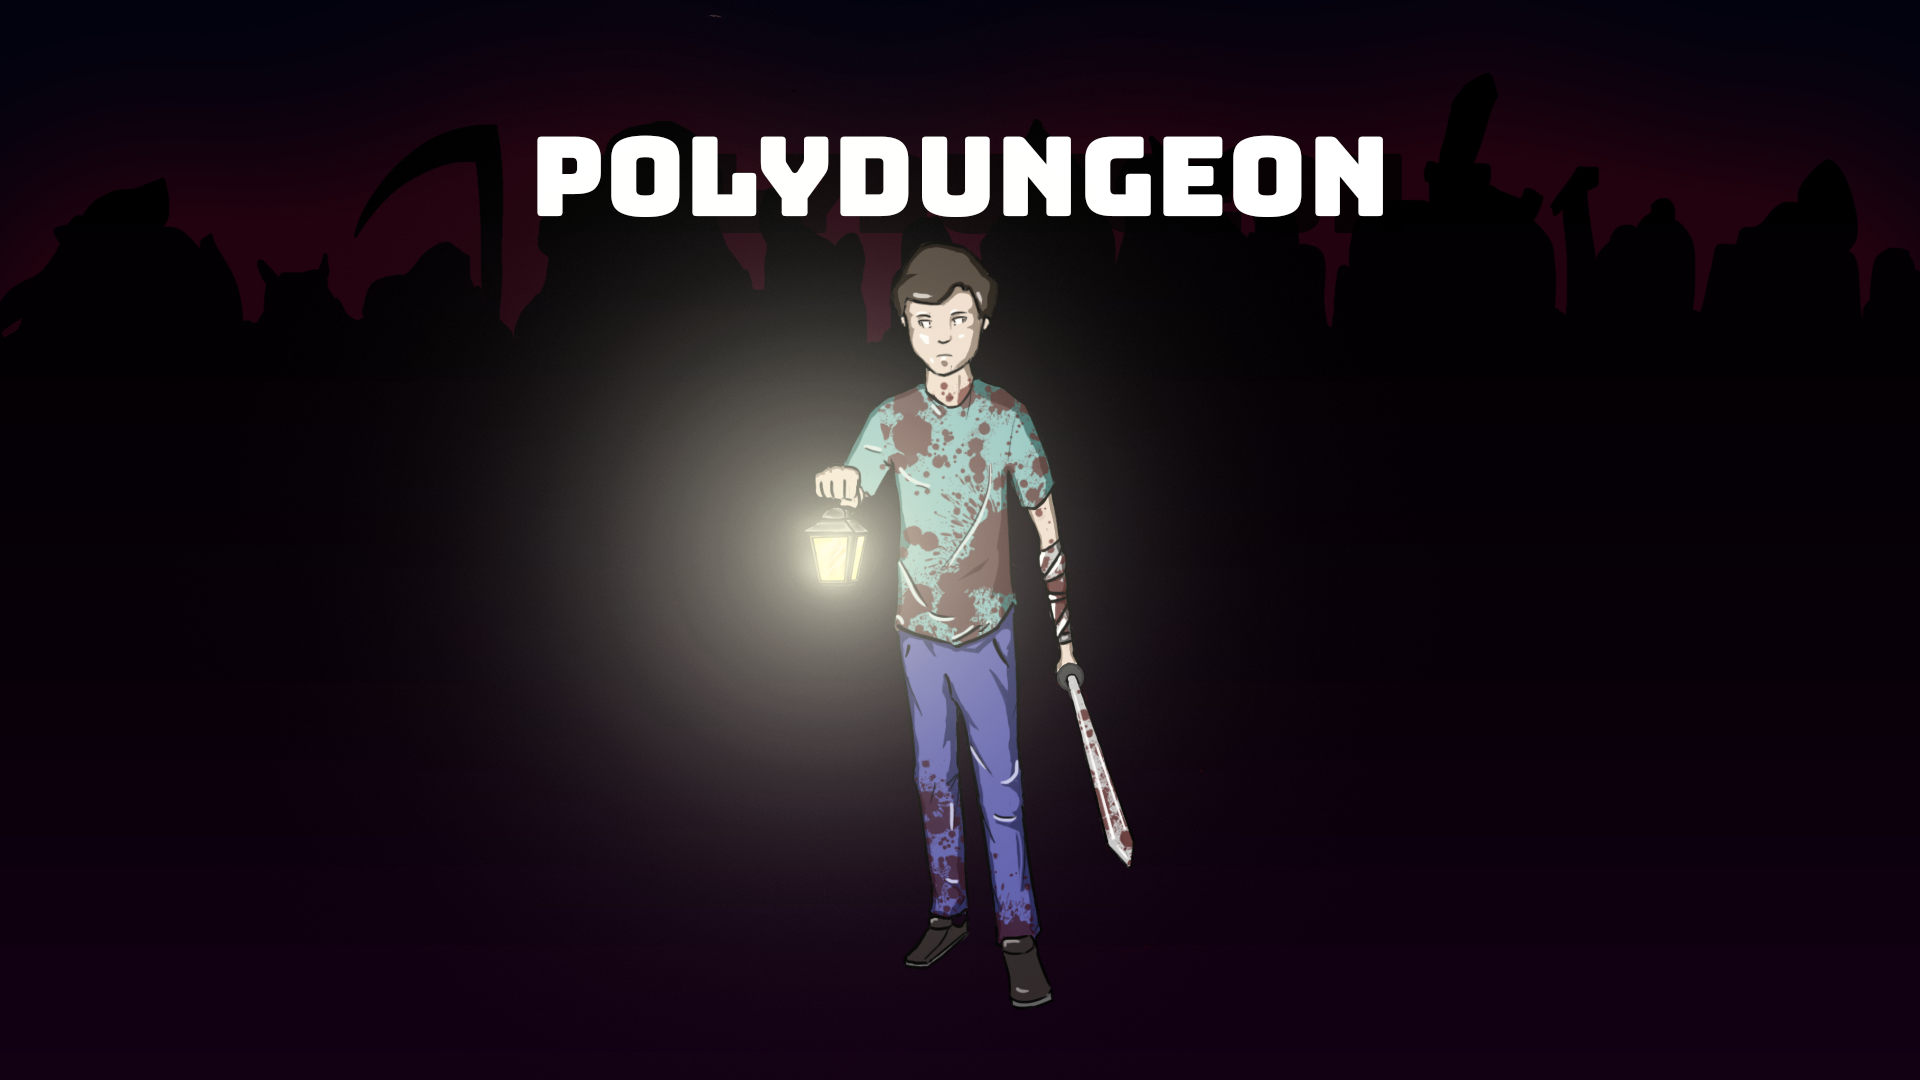 PolyDungeon